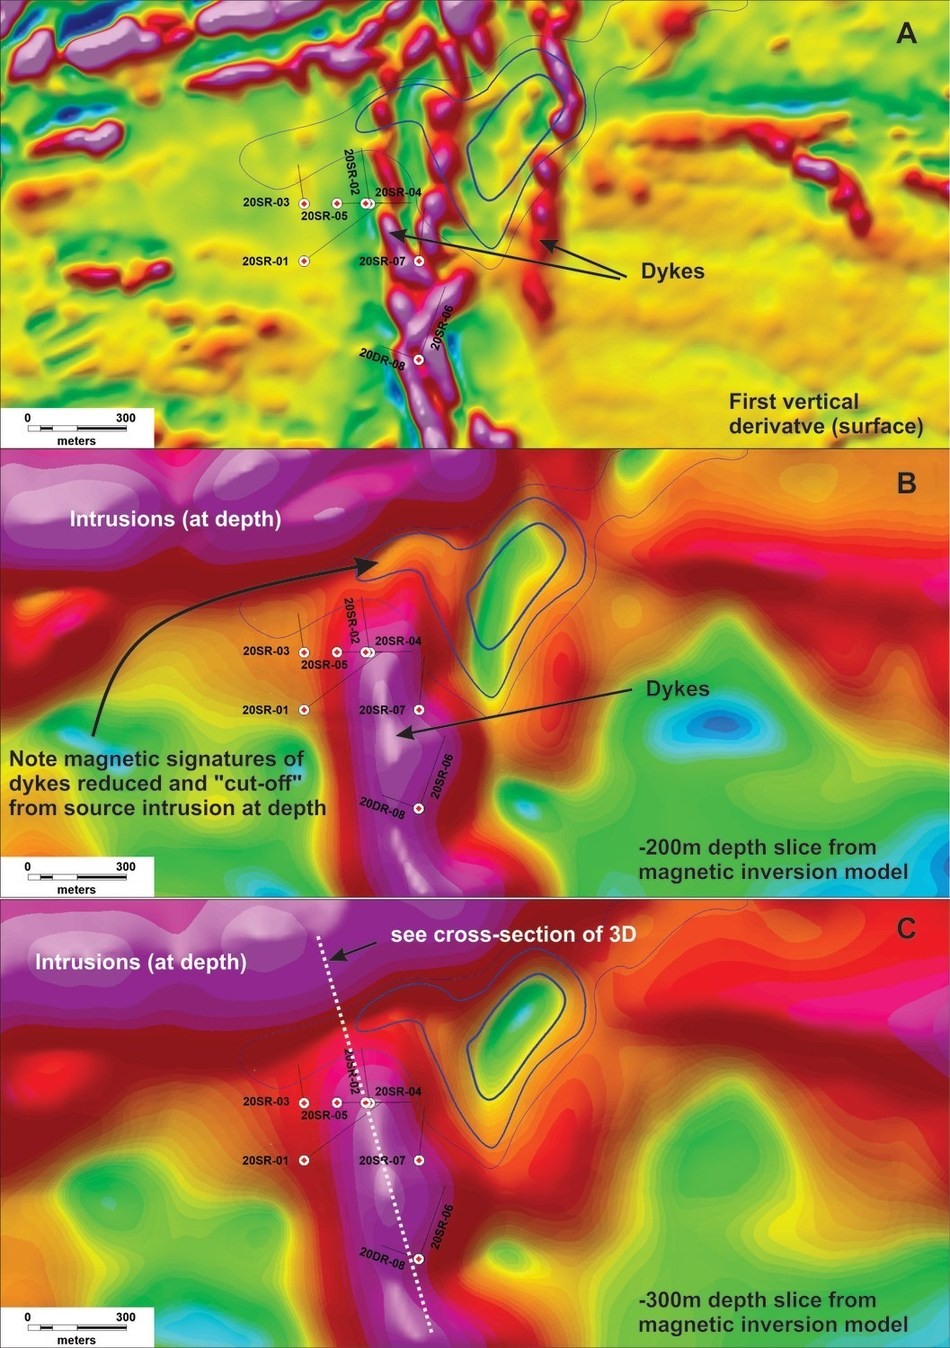 Image A-C: Depth Slices from airborne magnetic survey from surface to -30o meters showing magnetite destruction interpreted to be the resulted from epithermal alteration processes and veining. (CNW Group/Northern Shield Resources Inc.)